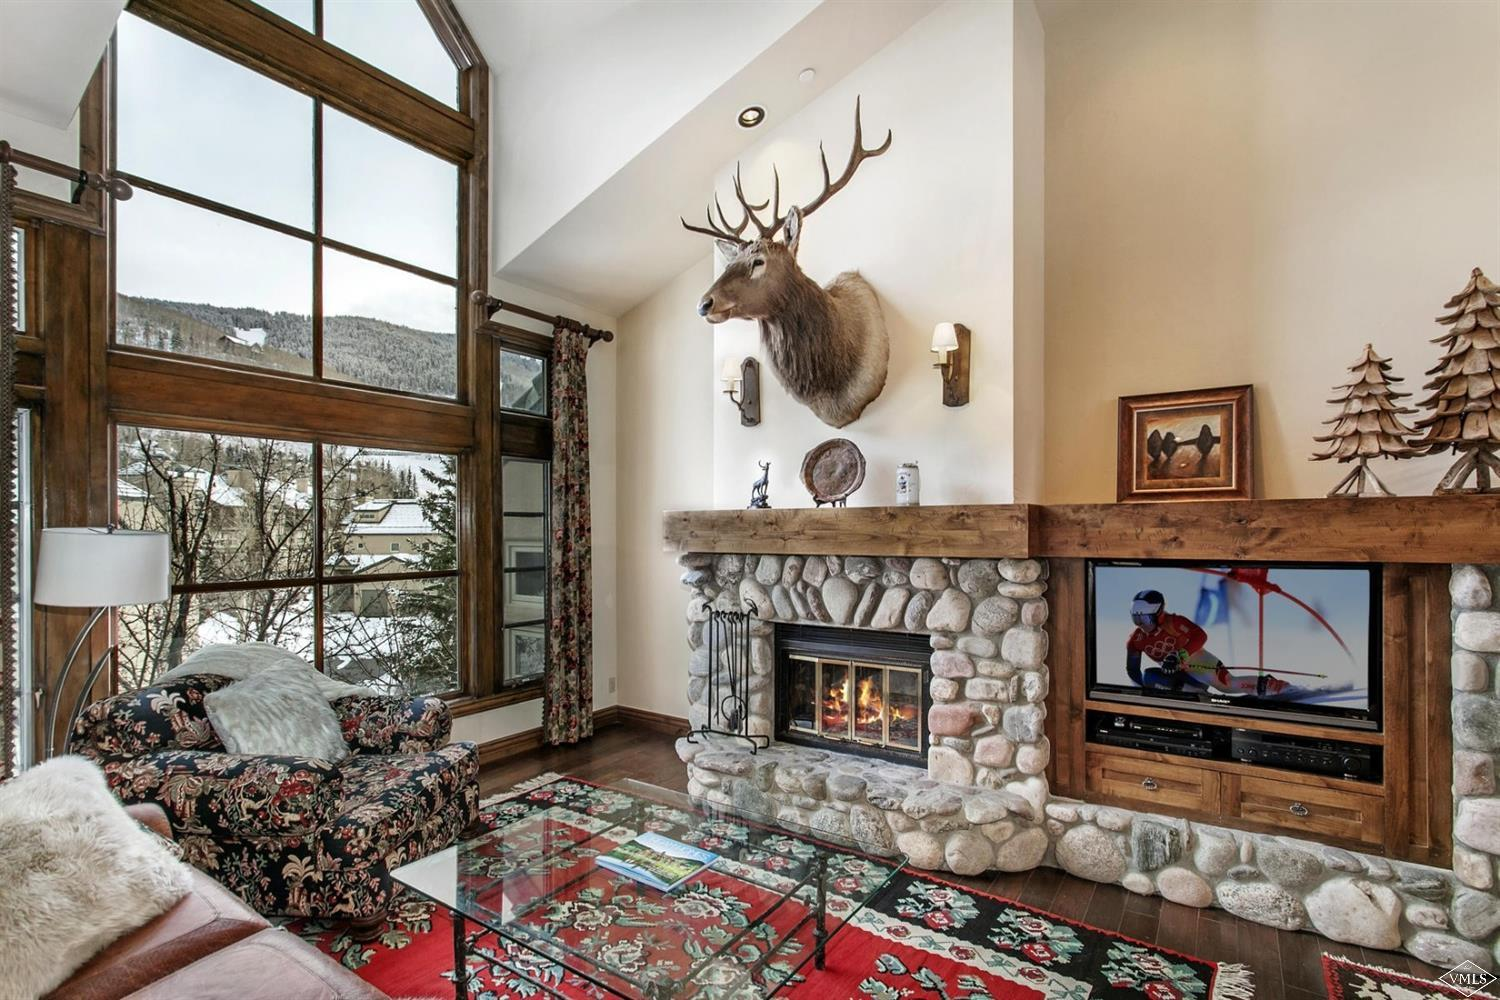 385 Offerson Road, M4, Beaver Creek, Co 81620 Property Photo